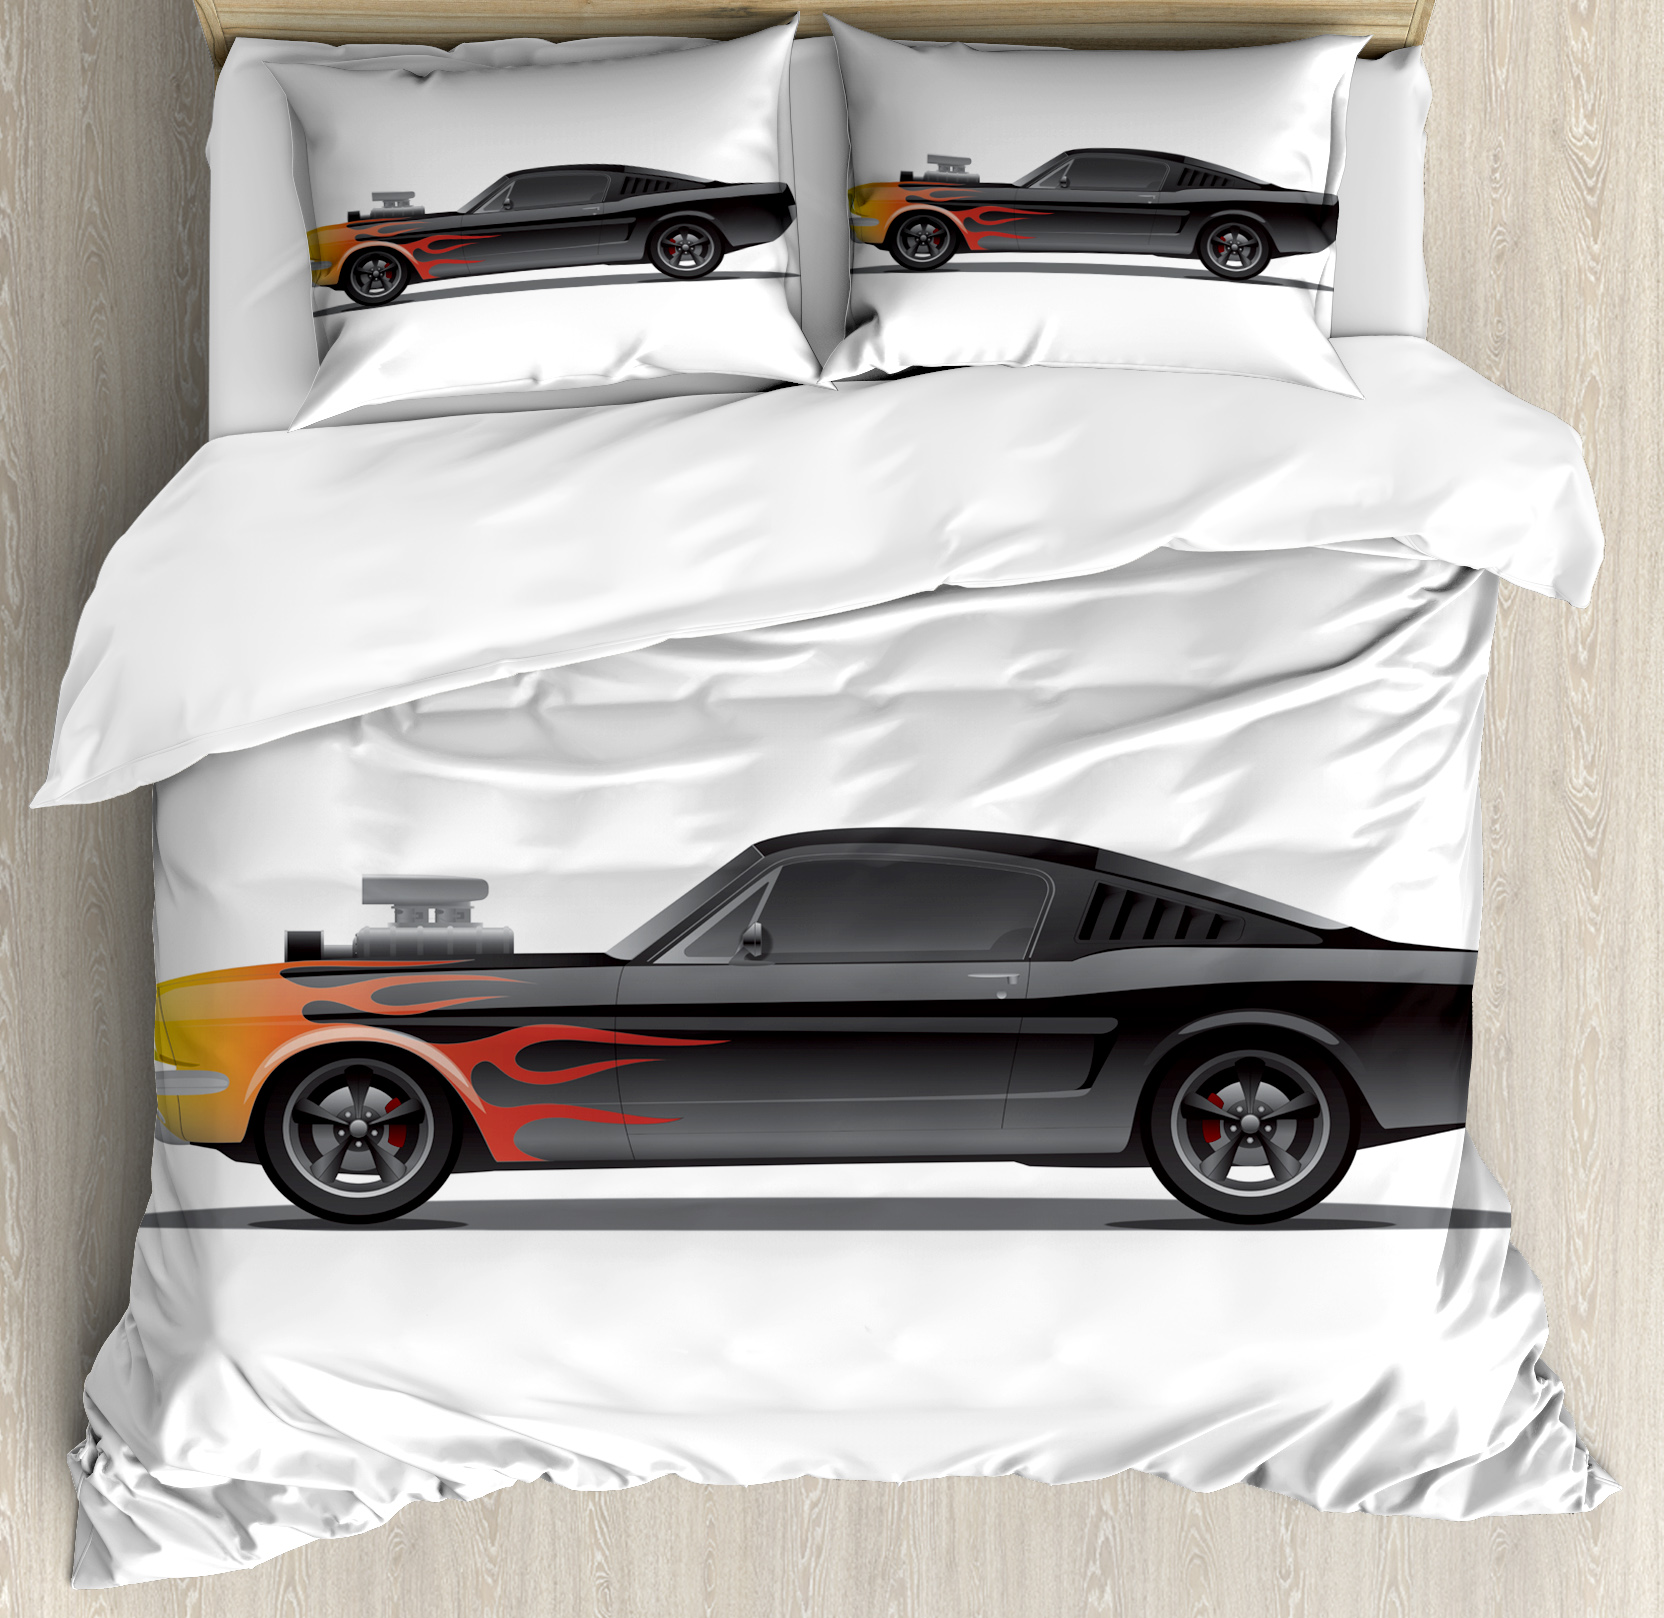 Cars Duvet Cover Set Custom Design Muscle Car With Supercharger And